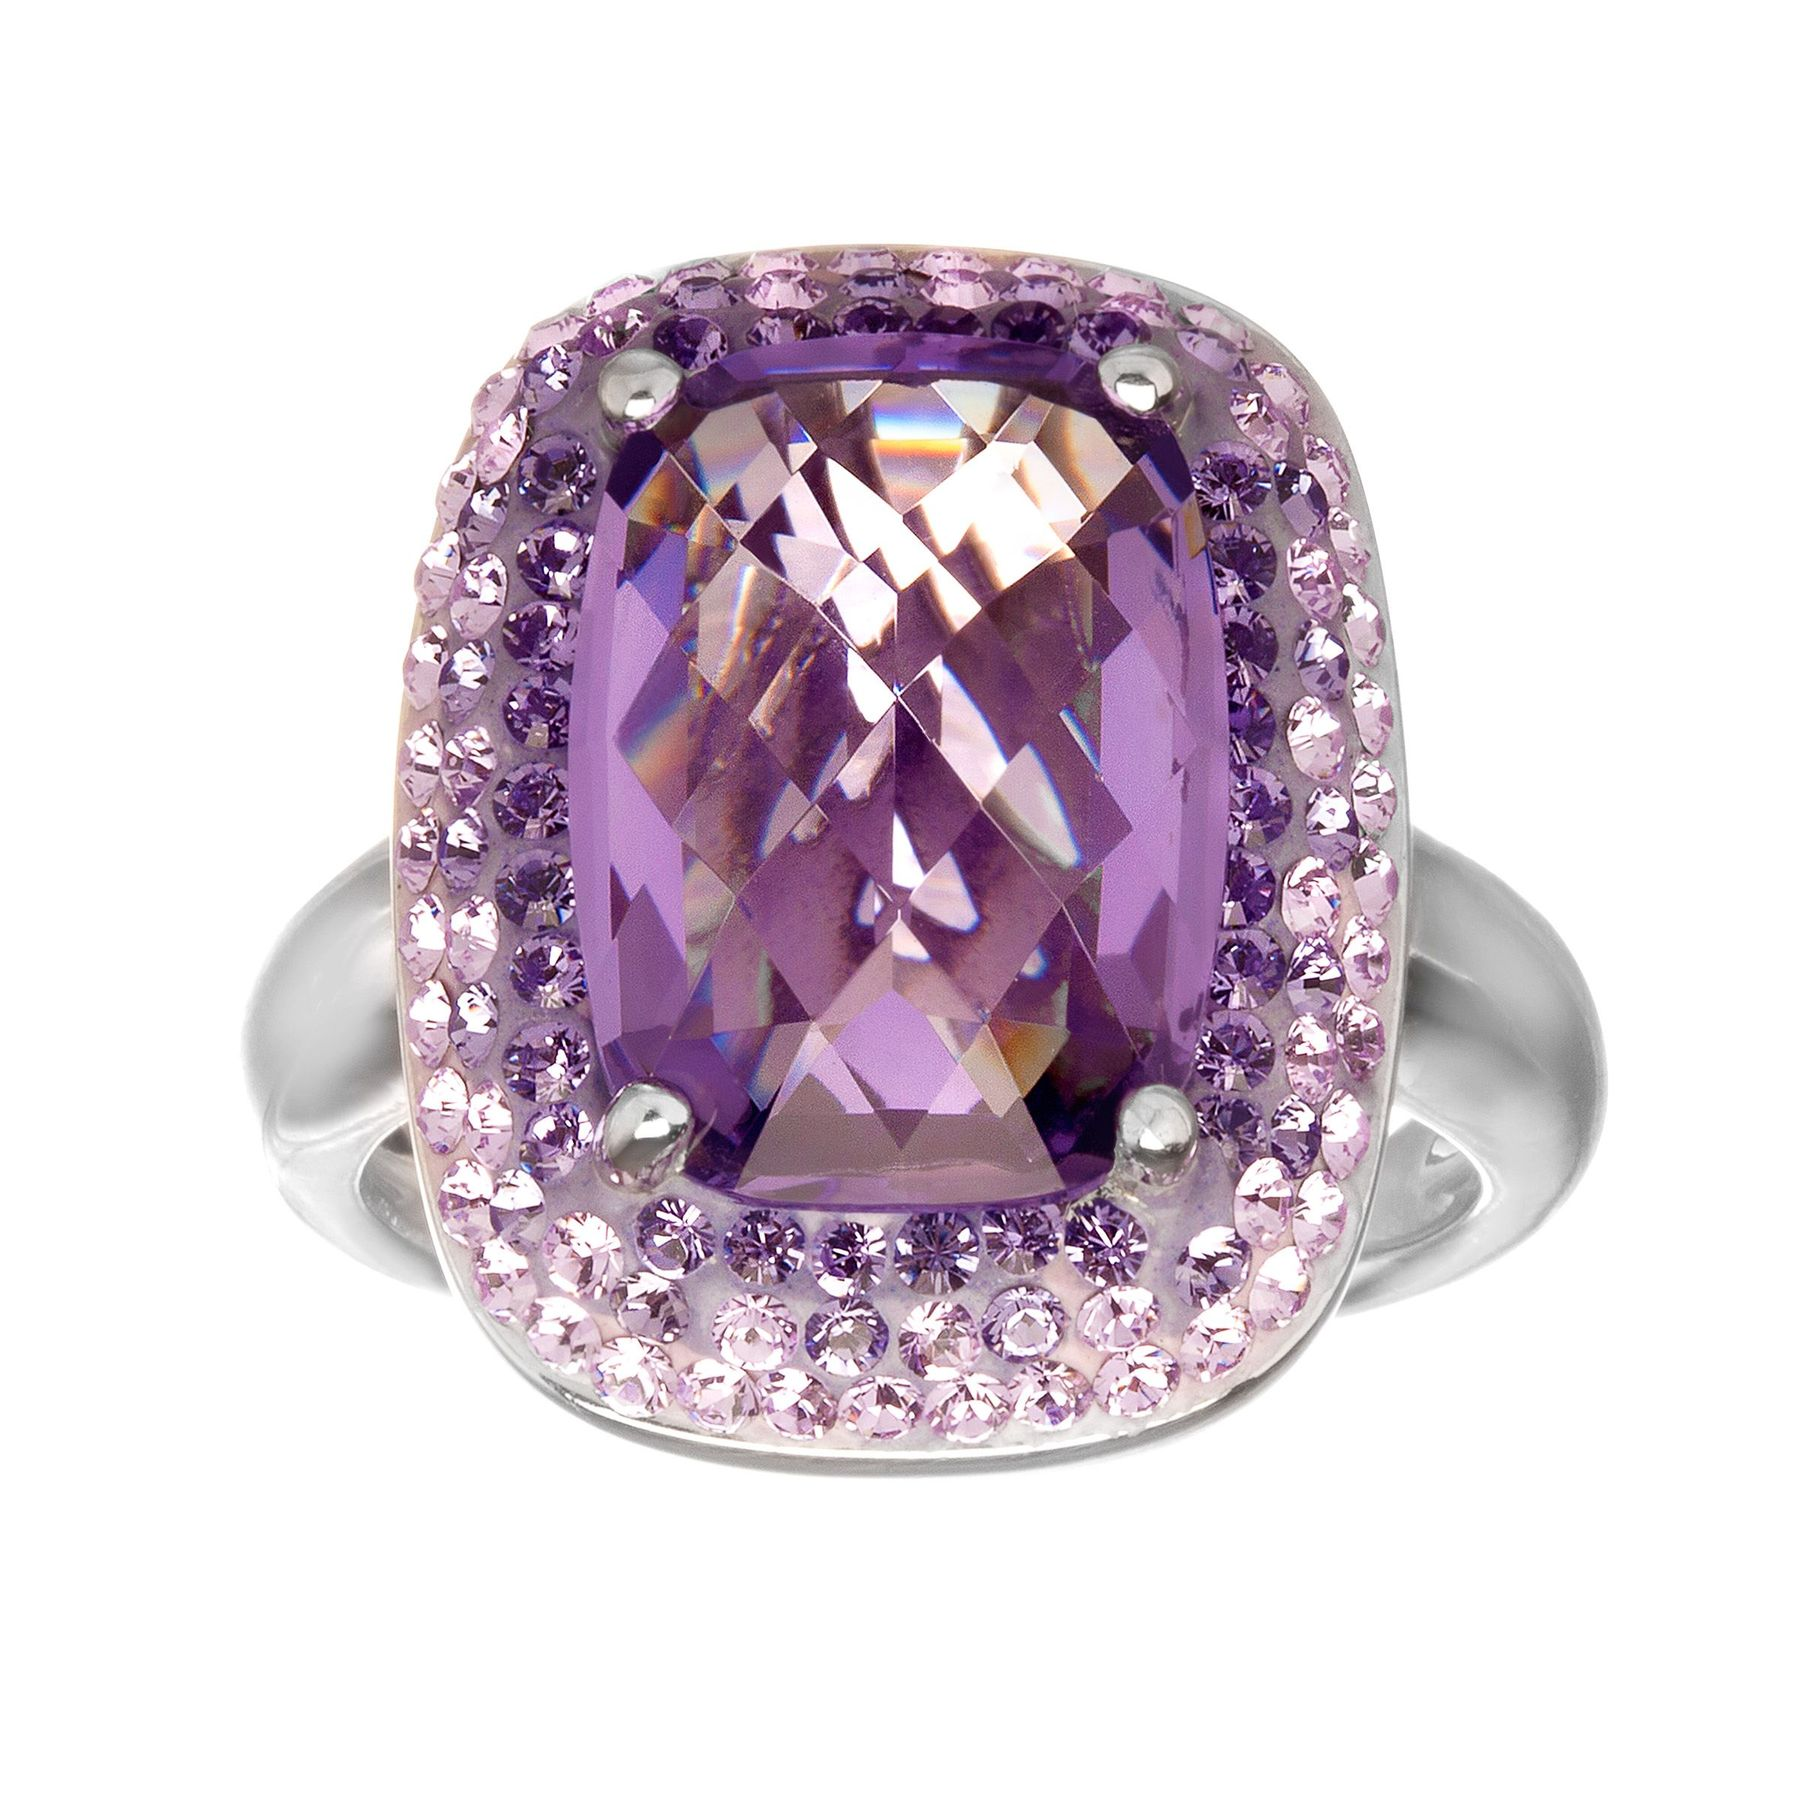 Crystaluxe Lavender Ring with Swarovski